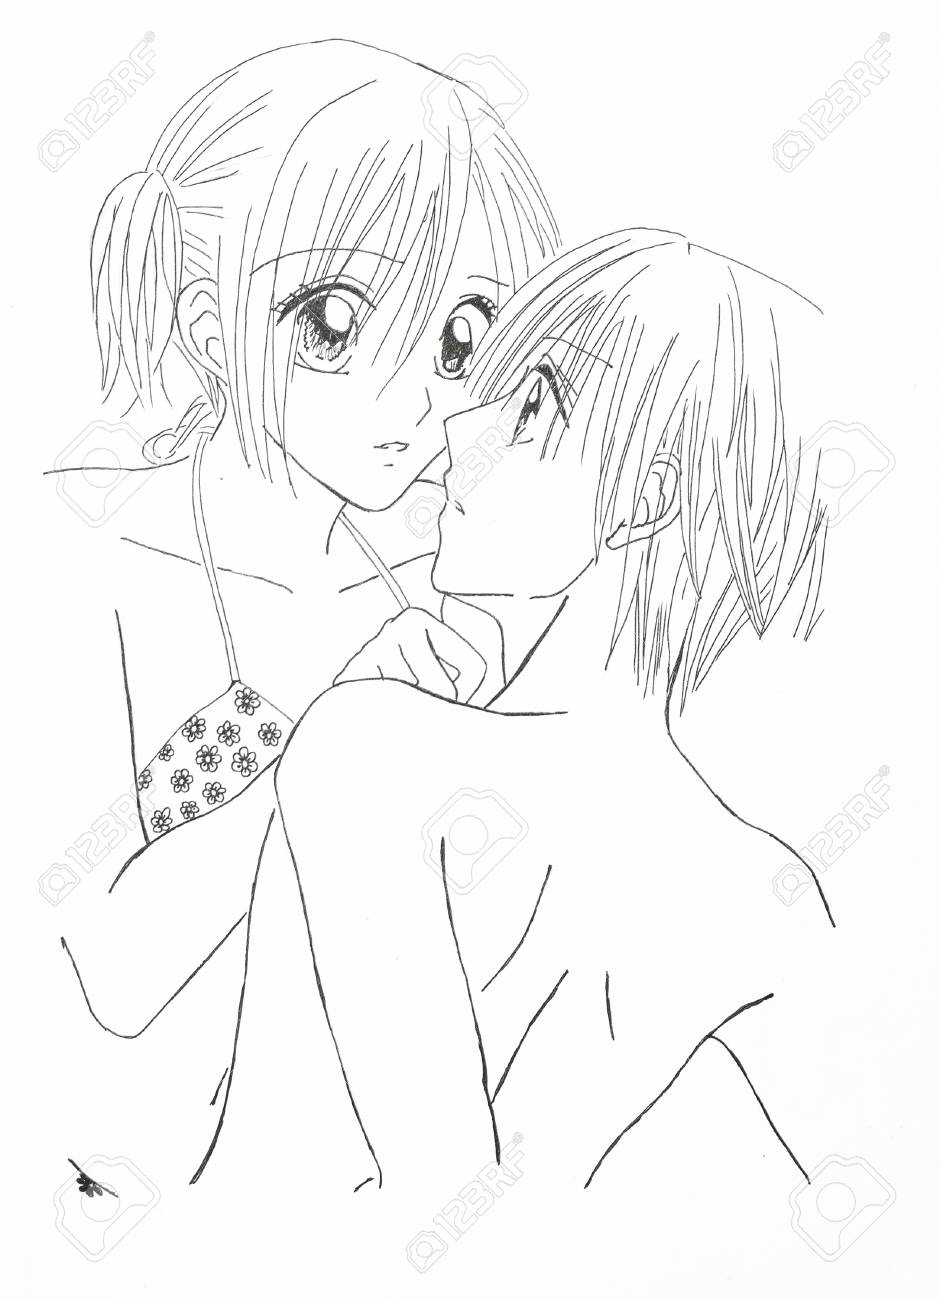 Drawing in the style of anime image enamored girl and the guy in the picture